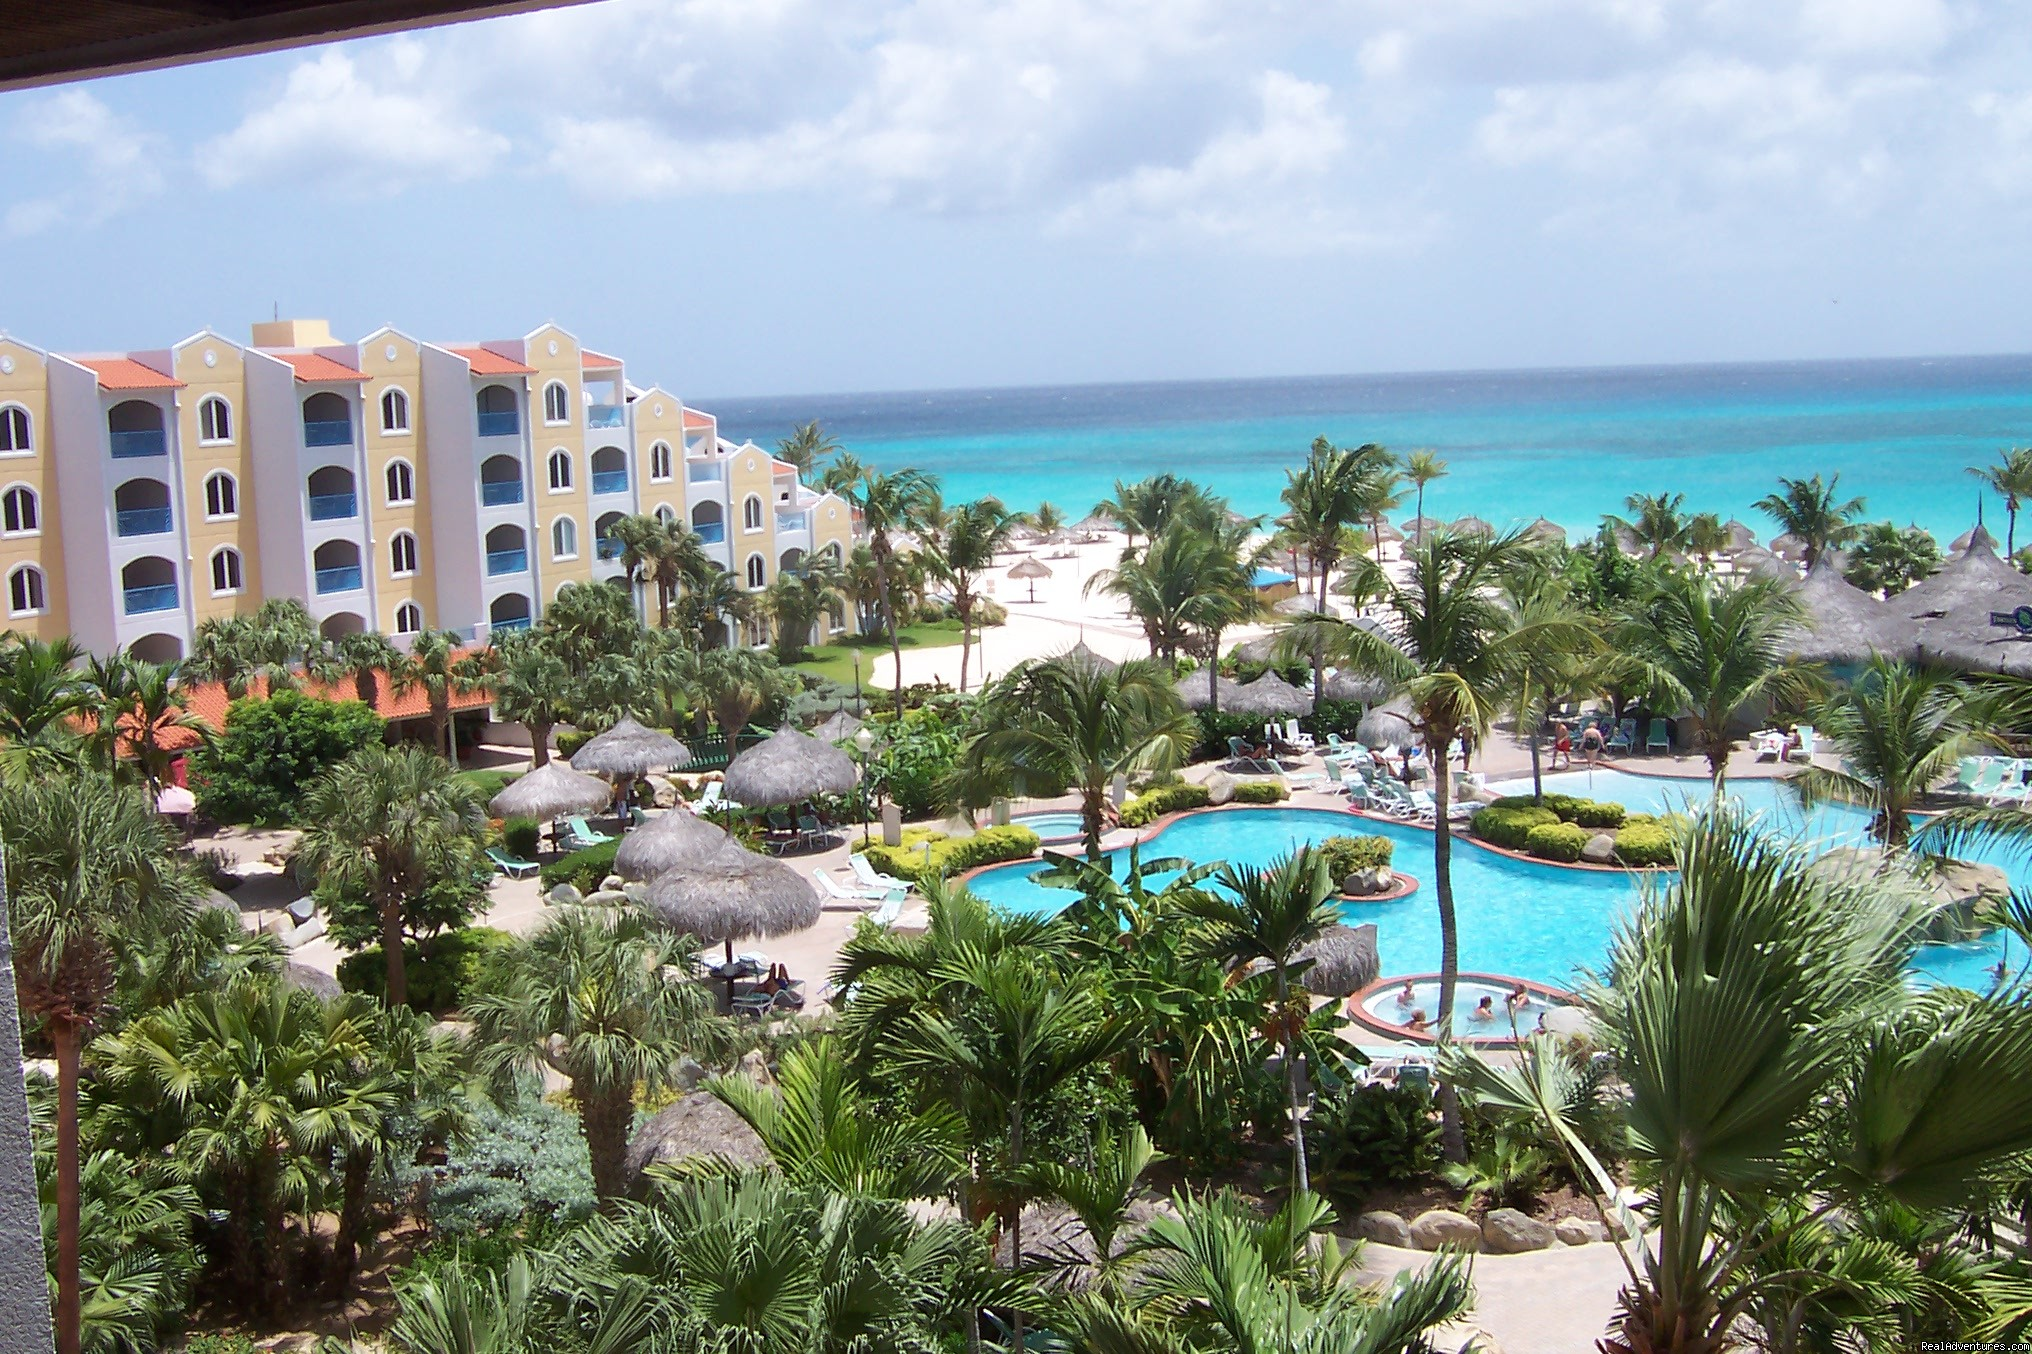 Costa Linda deLux Beach Resort Oranjestad Aruba Vacation